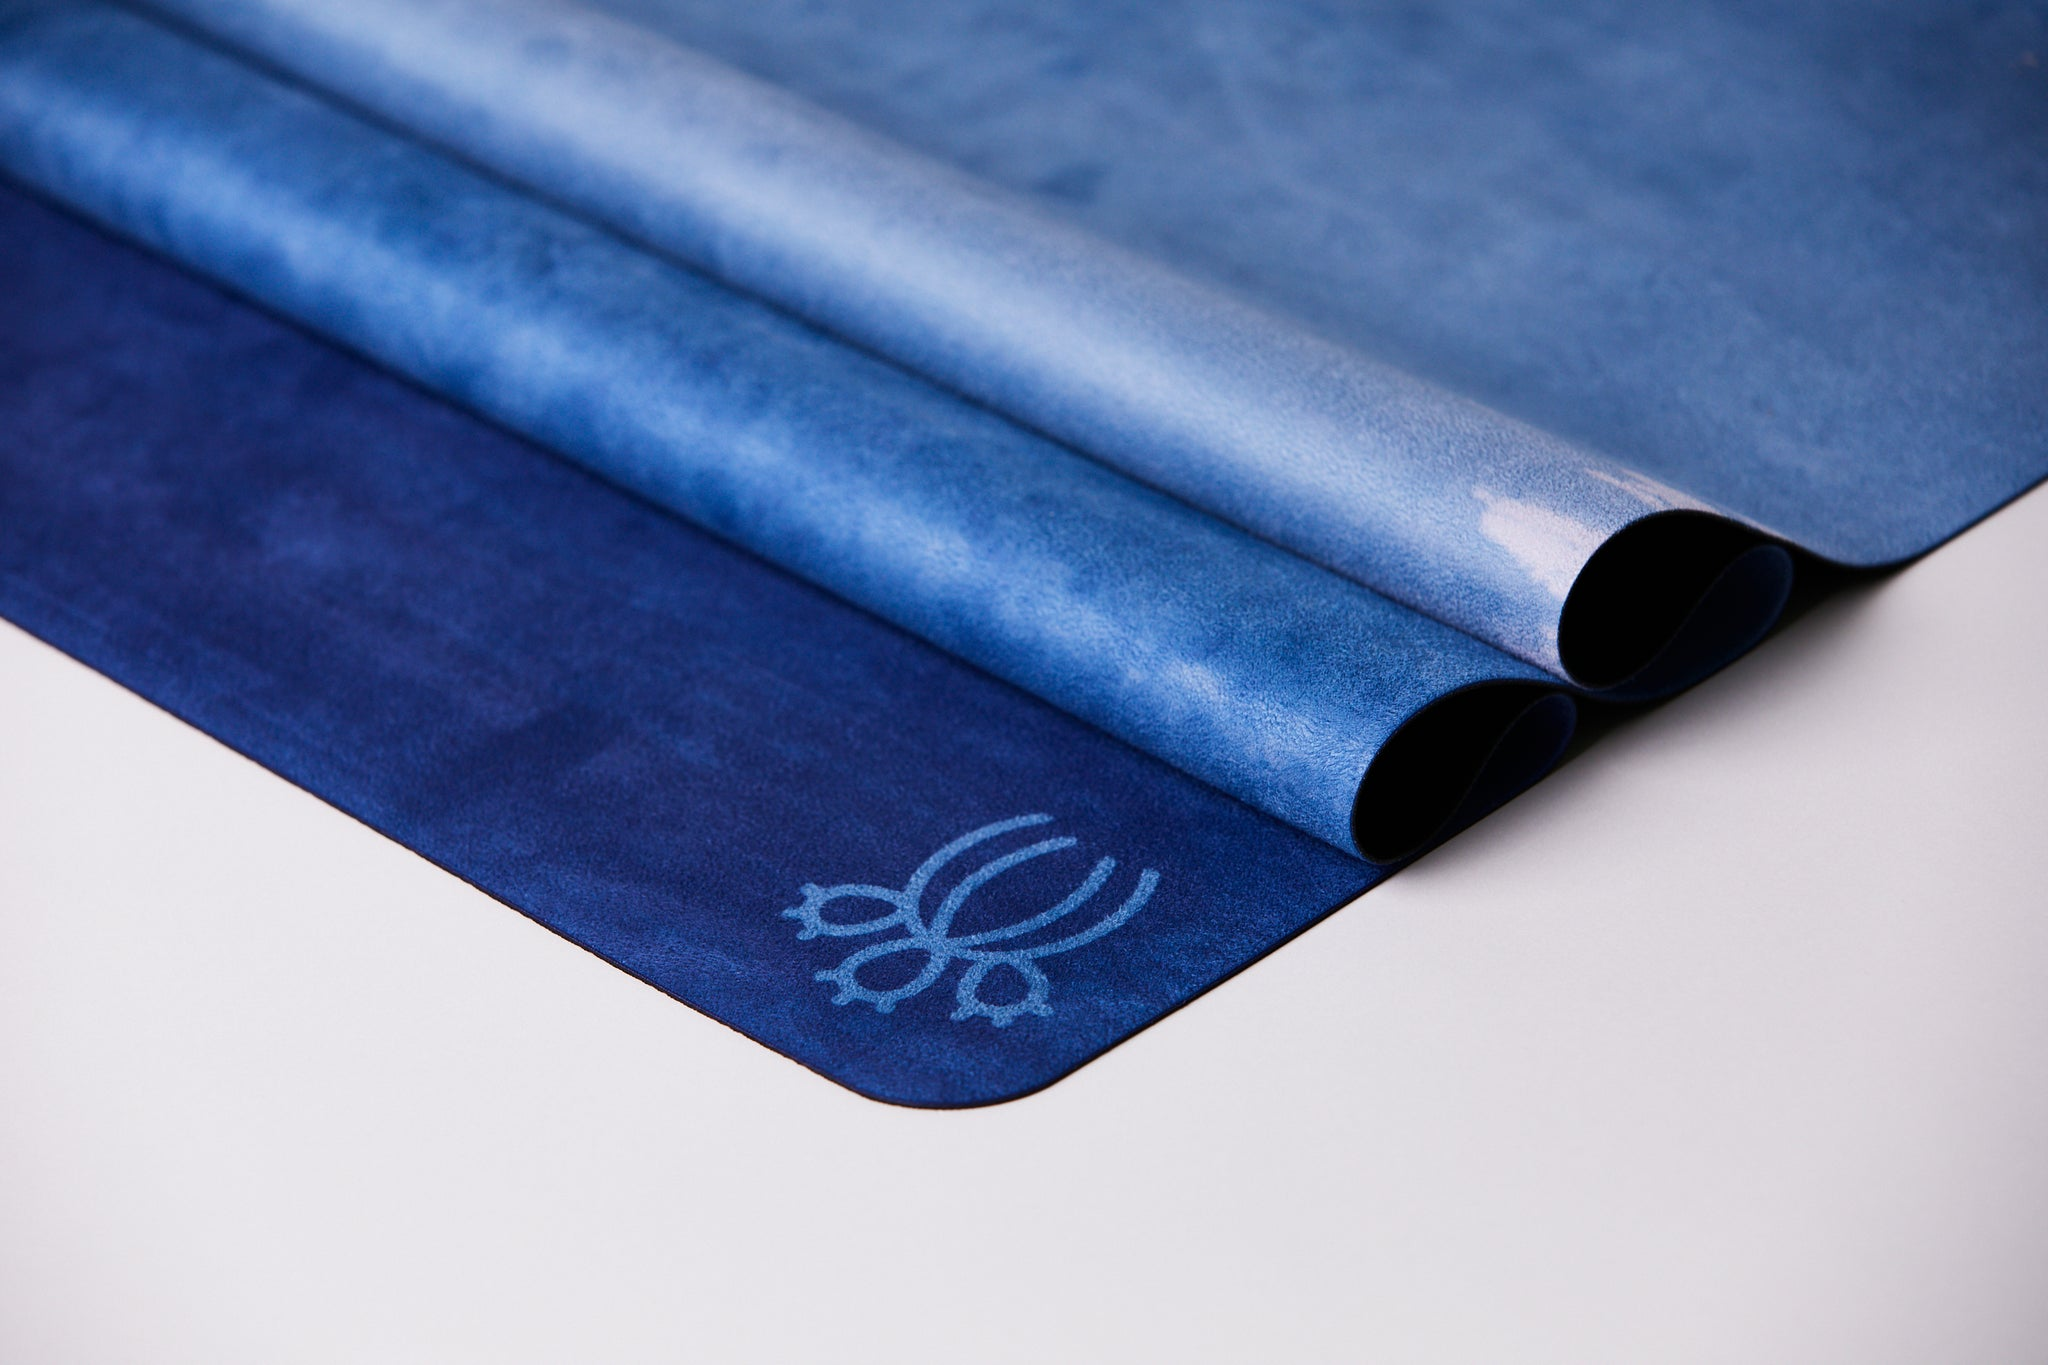 Patience Travel Yoga mat